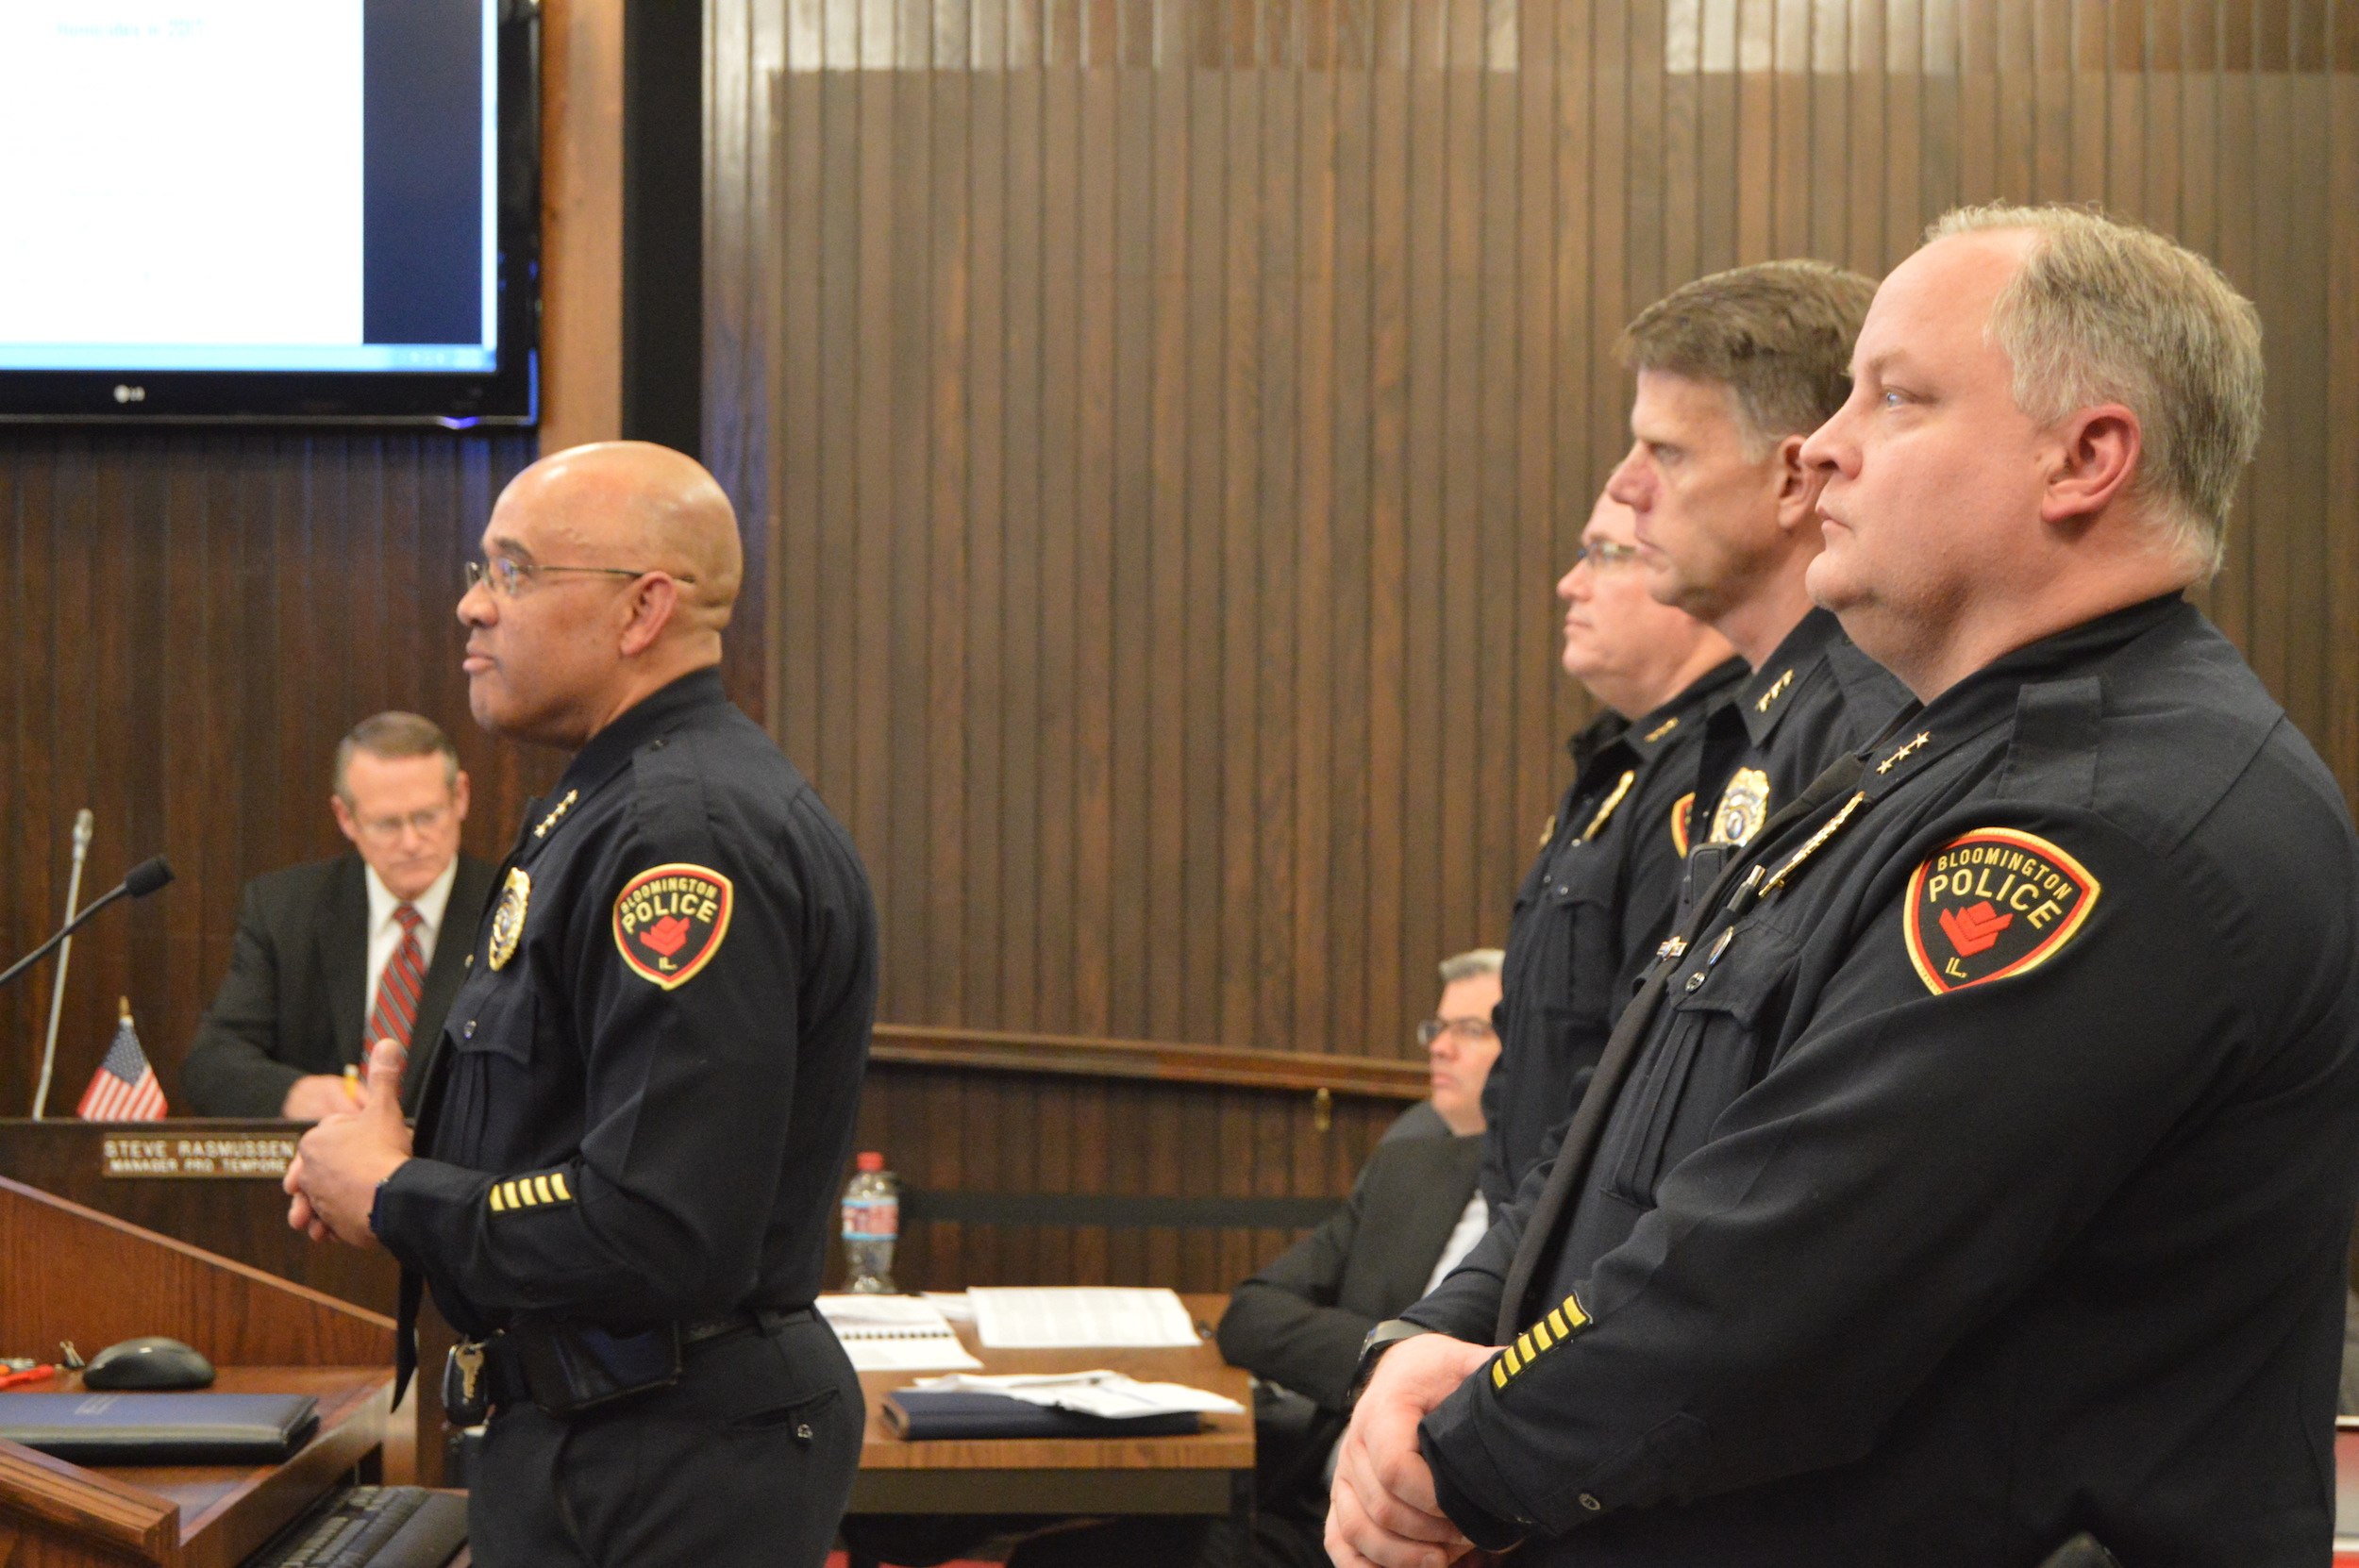 Bloomington Chief of Police Brendan Heffner presented the department's Annual Police Report at Monday night's Council meeting. The department recorded ten fewer major crimes in 2017, or a 1% decline, from the previous year. (Image credit: Breanna Grow)